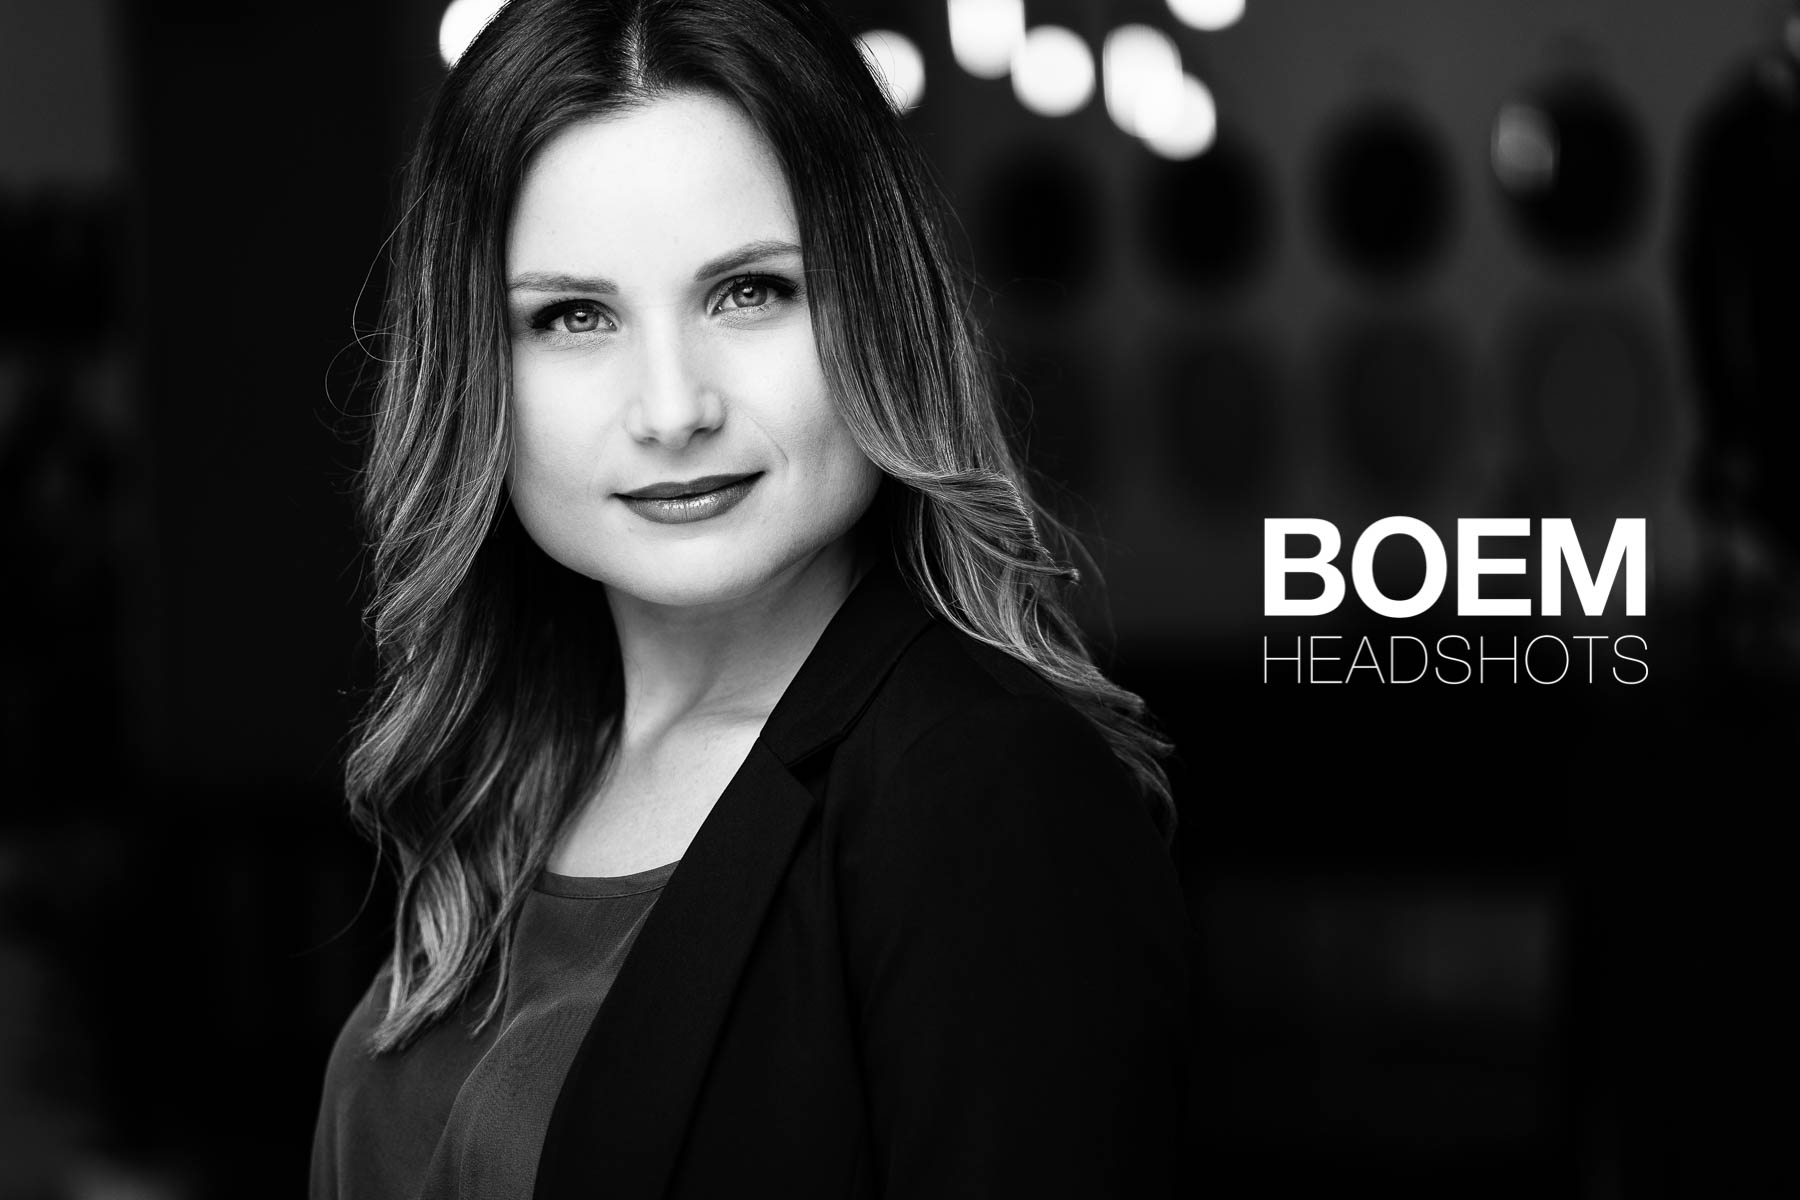 We had a great time shooting Sophie's brand new executive headshots in Adelaide this past week. She needed a fresh and modern look for her networks and we got some truly amazing headshots for her.